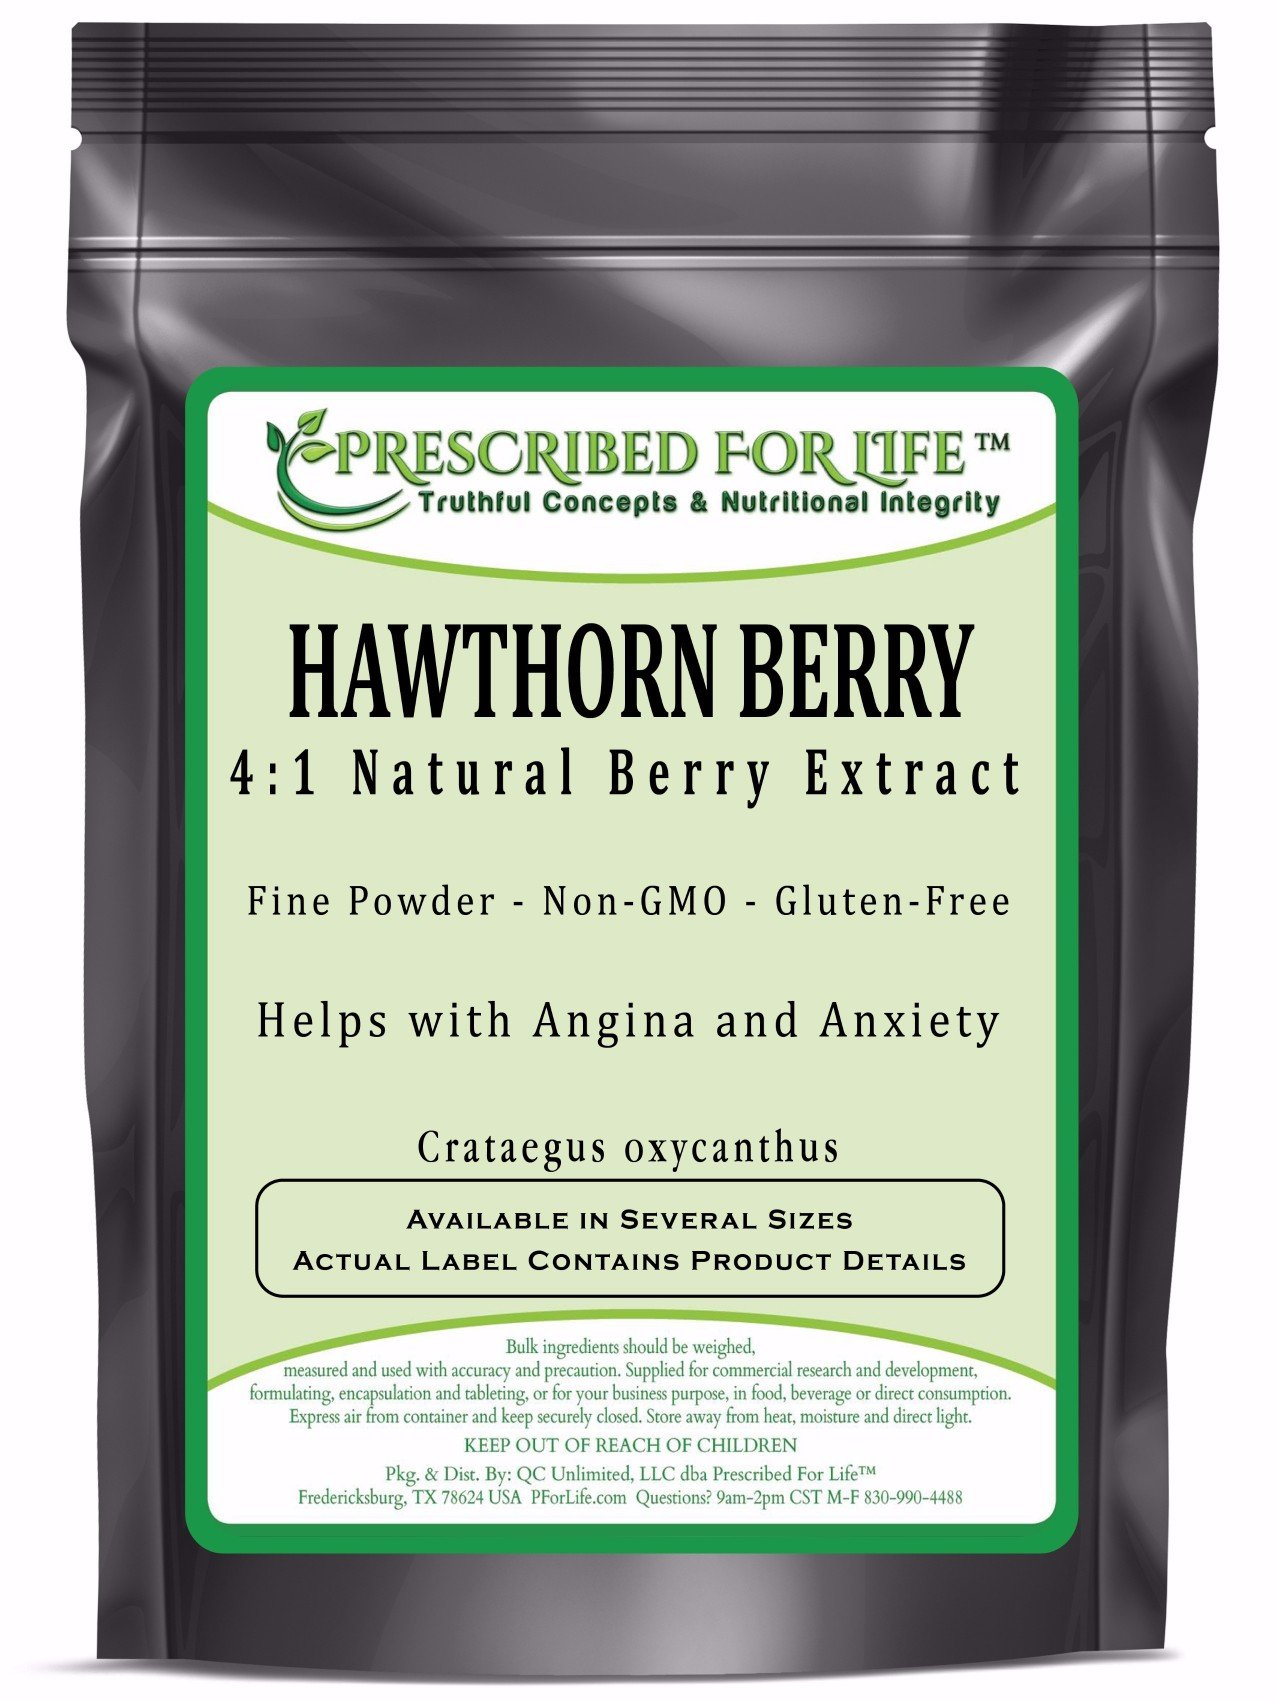 Hawthorn - 4:1 Natural Berry Extract Powder (Crataegus oxycanthus), 2 kg